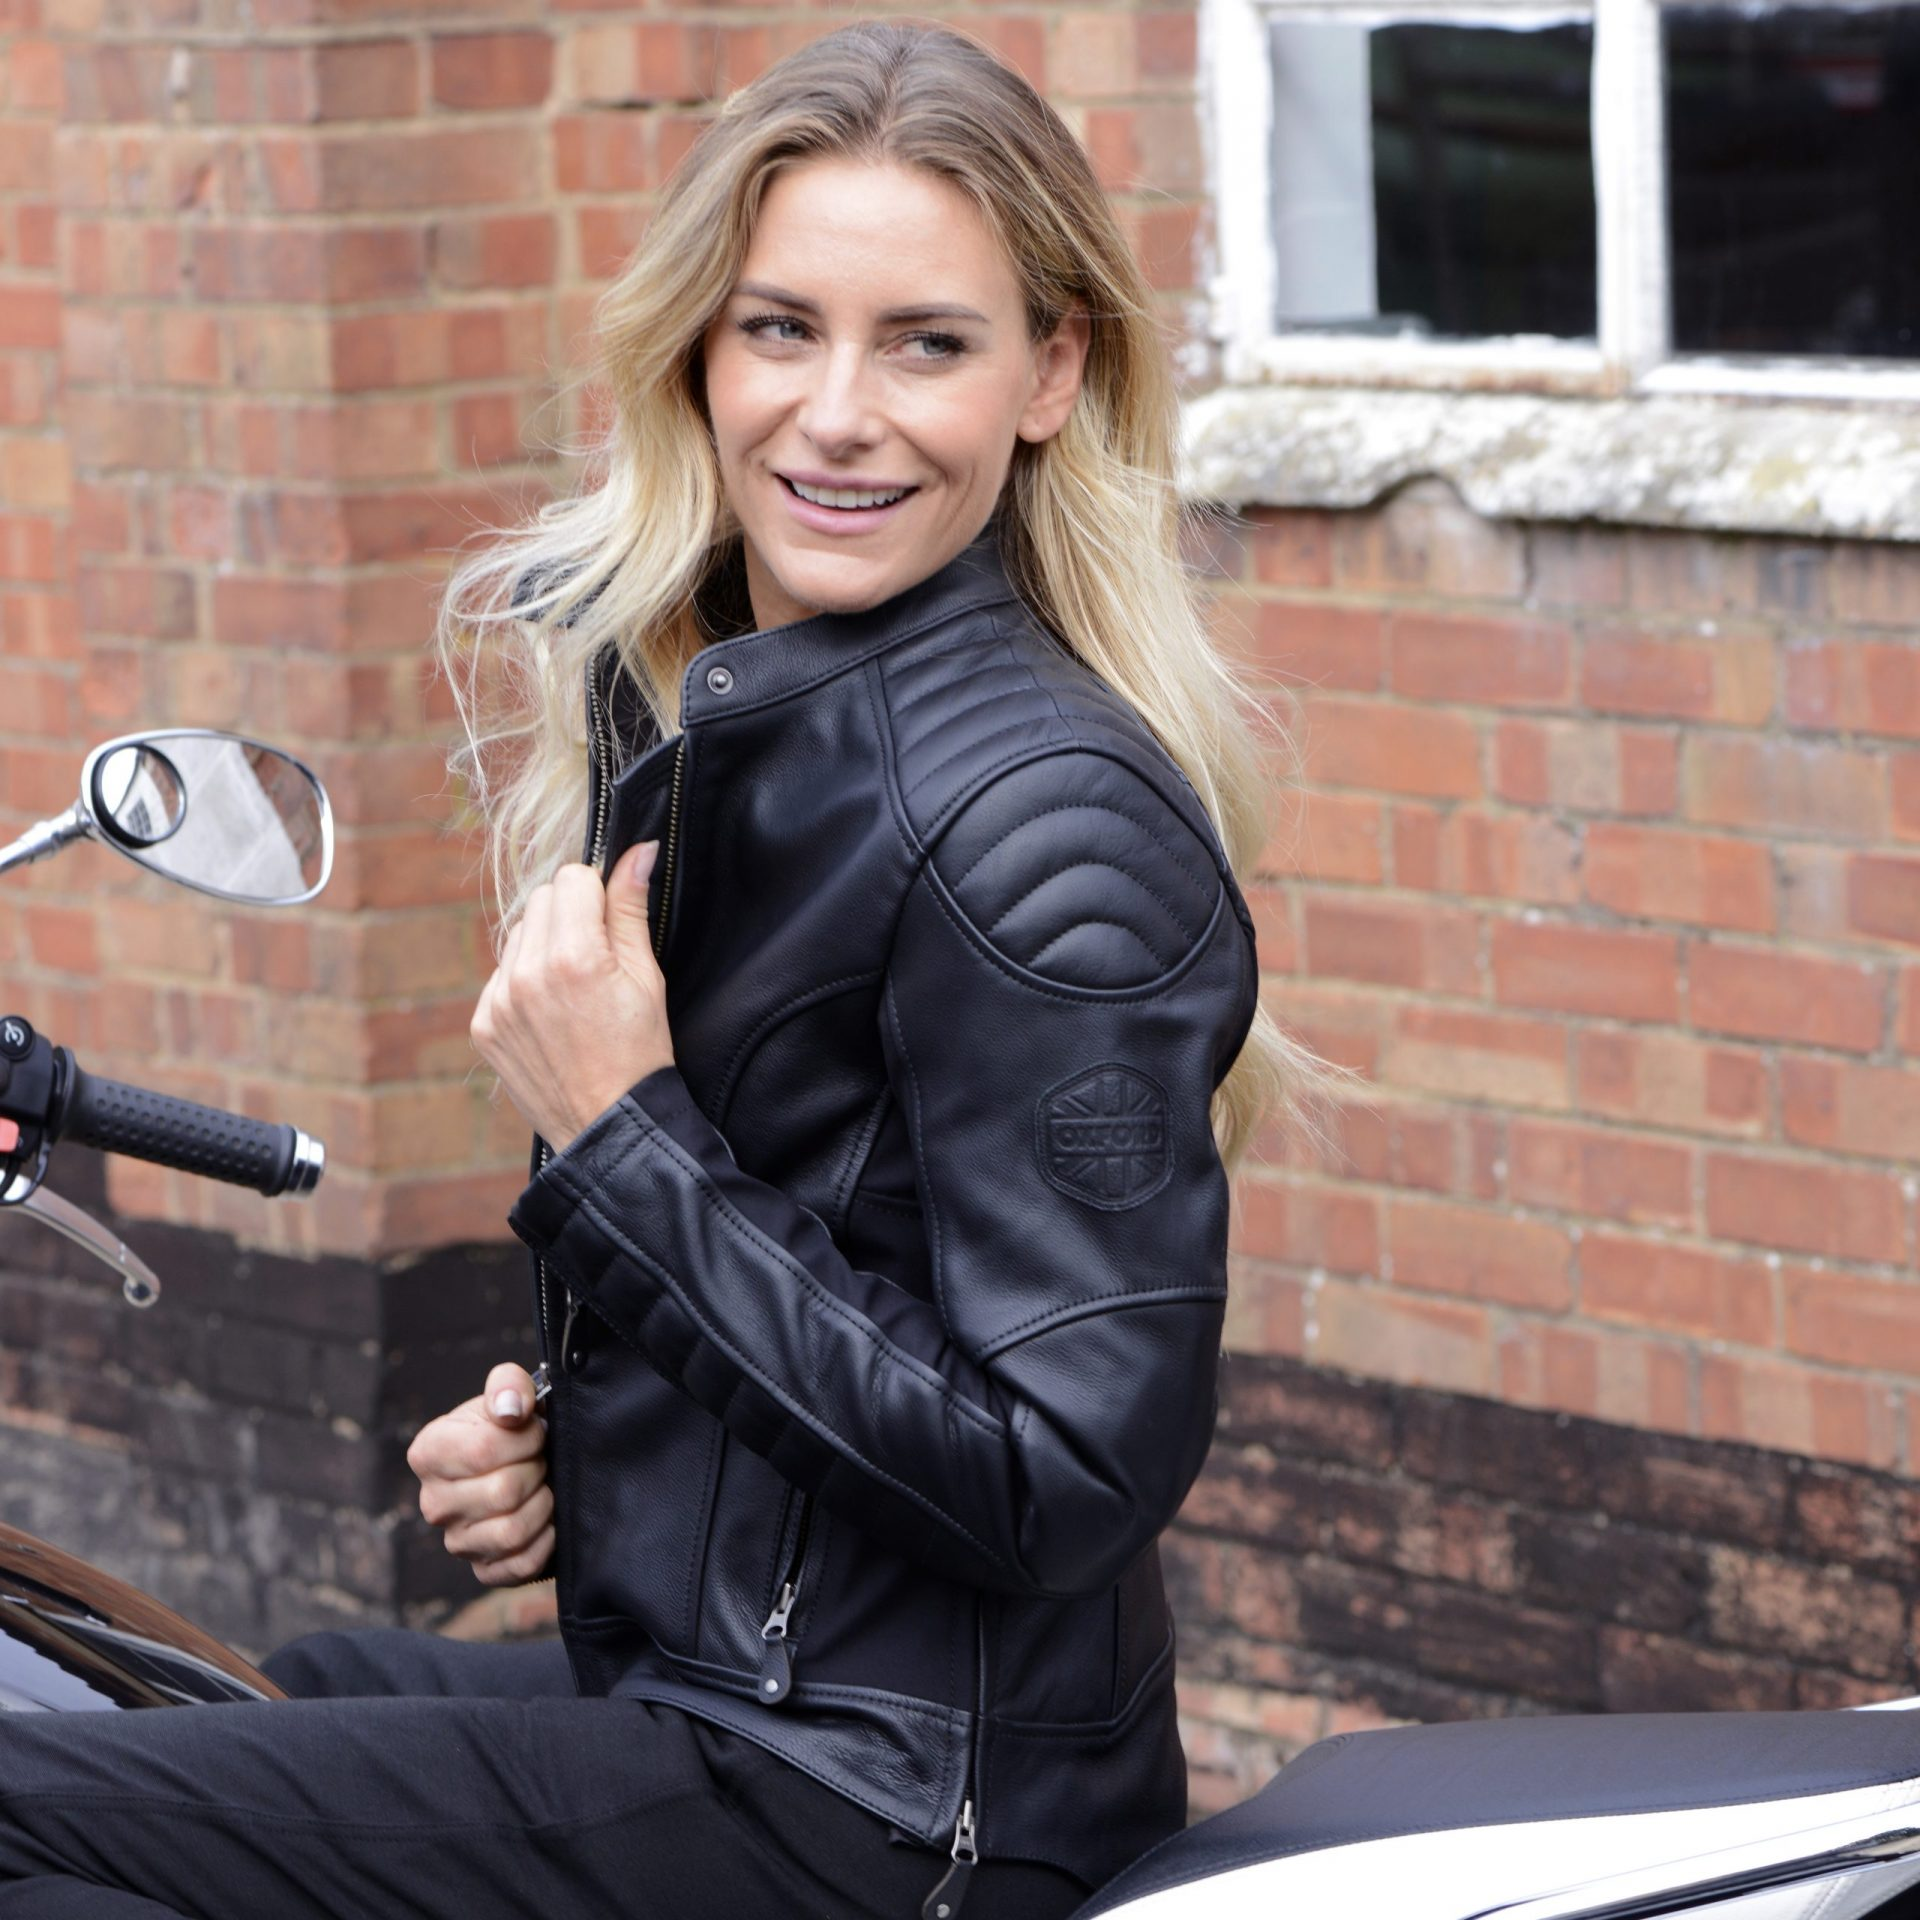 beckley-lifestyle3-scaled Women's Beckley Leather Jacket